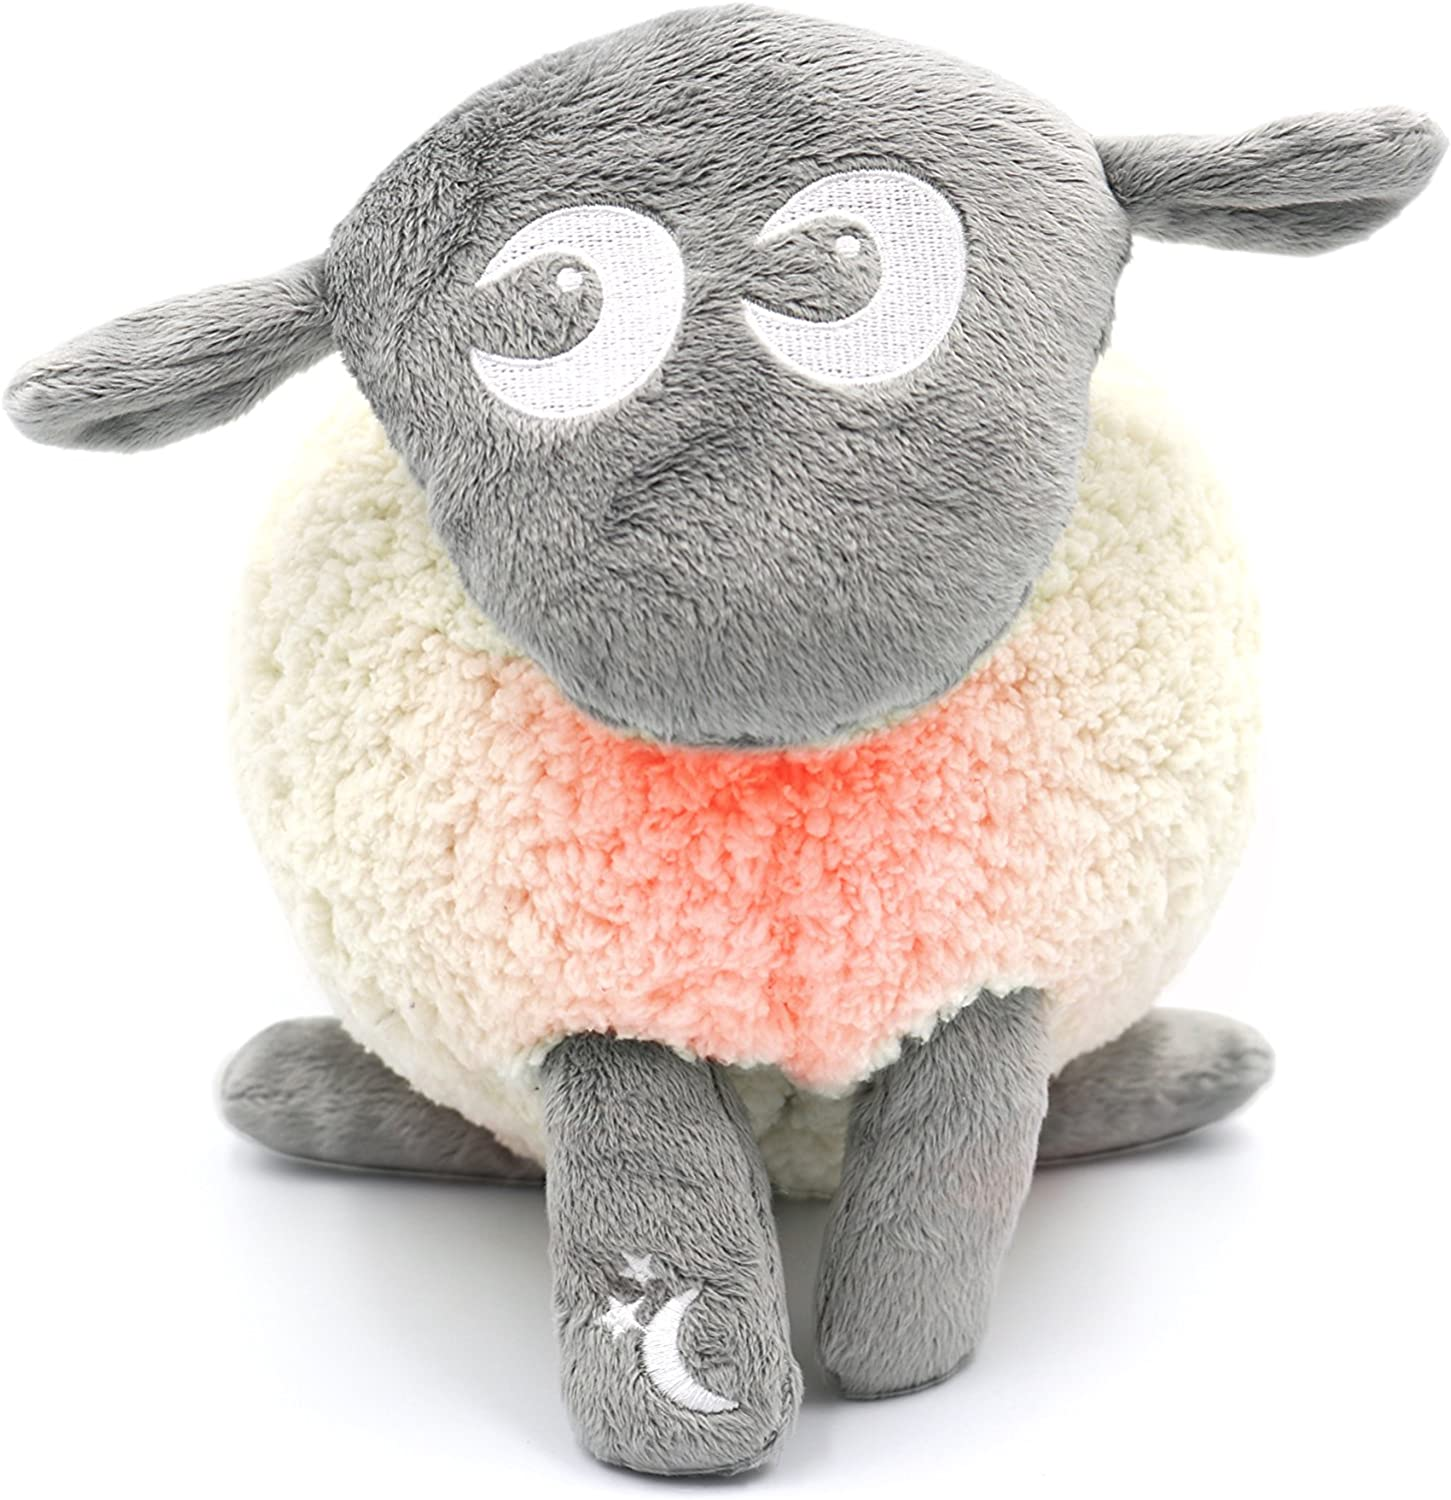 Sweet Dreamers, Ewan The Shushing Sheep - Crib Sleep Soother, Baby White Noise and Shusher Sound Machine with Cry Sensor and Night Light